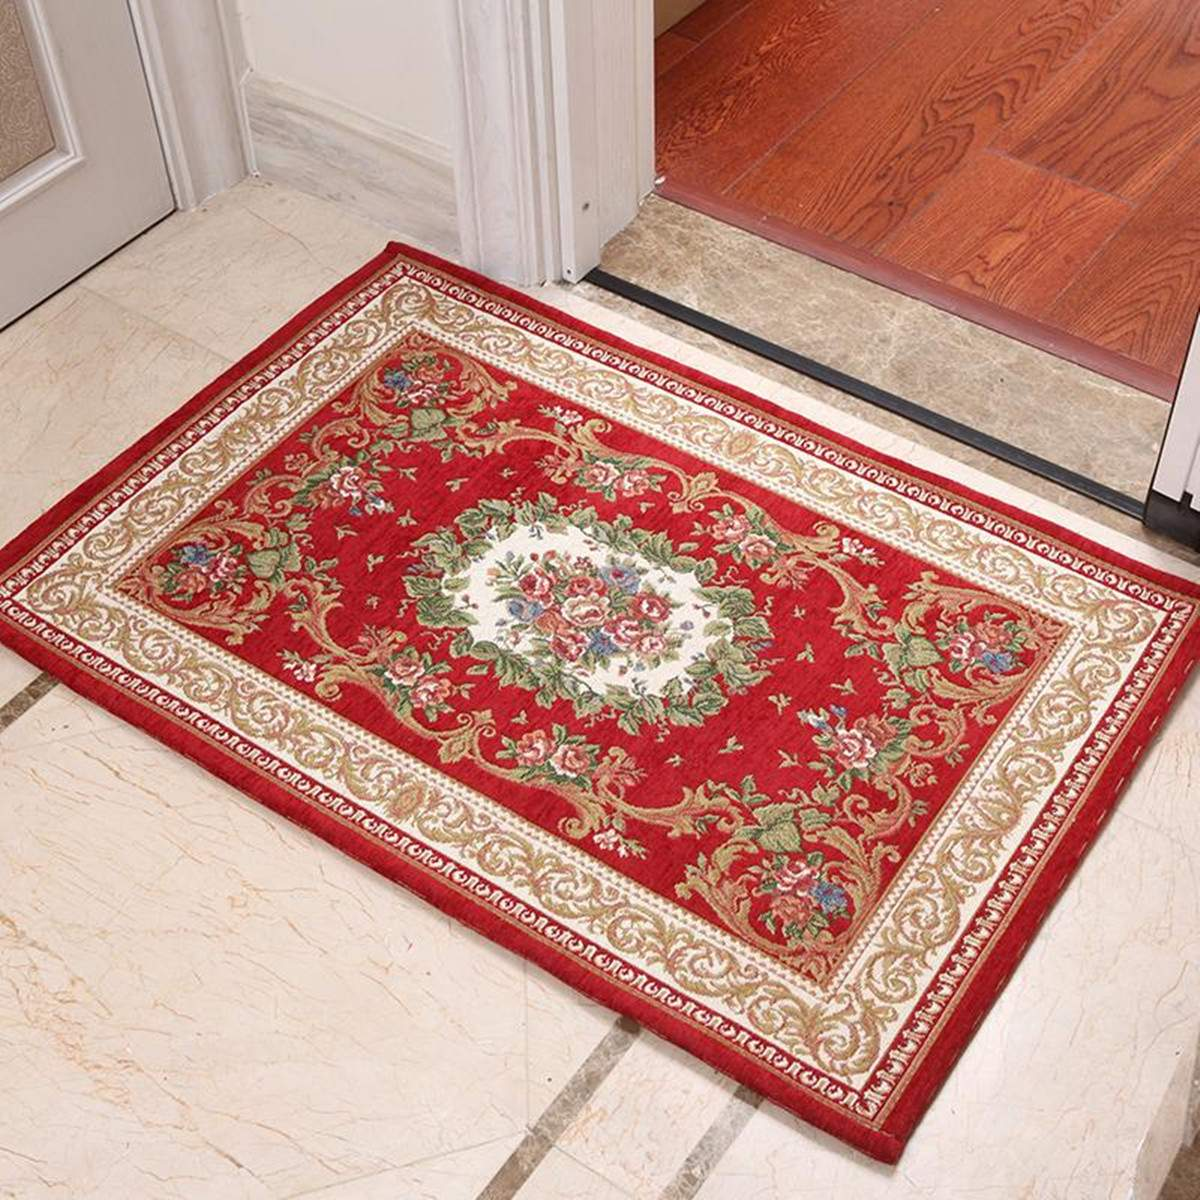 Traditional Handmade Area Persian Rug Oriental Mat Living Room Bedroom Carpet Home Decoration Anti-Slip Floor Carpet 60x90cm